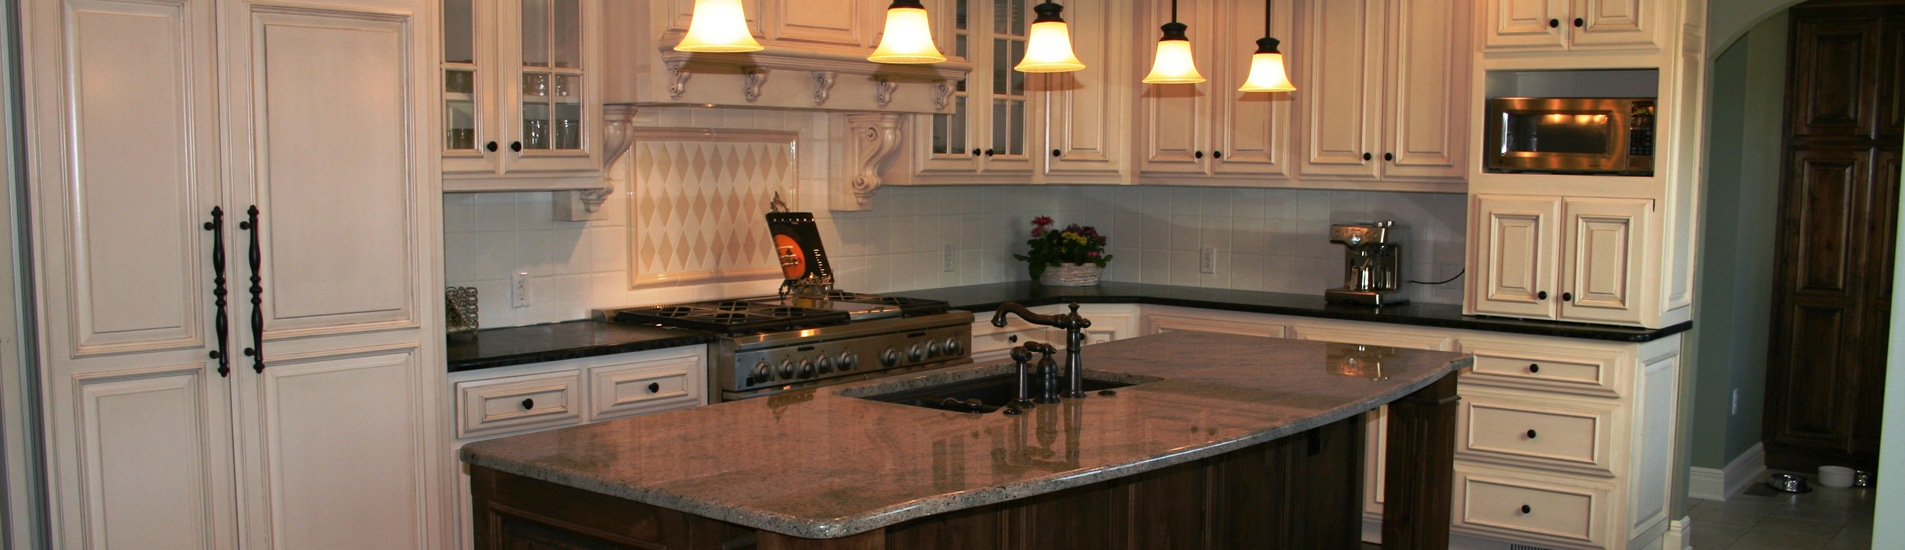 Kitchen remodeling olathe overland park ks kansas for Kitchen design kansas city